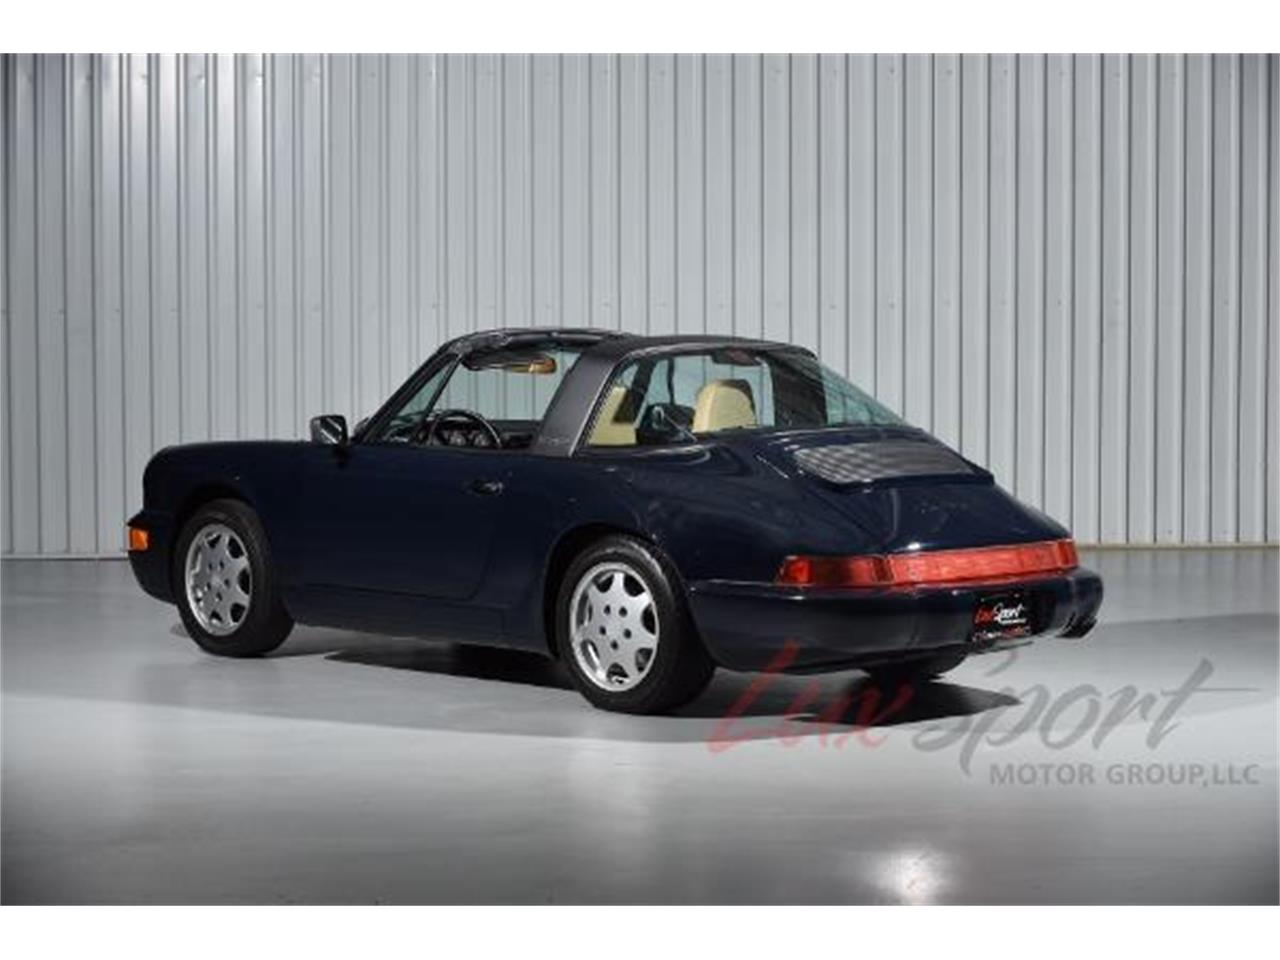 Large Picture of '90 Porsche 964 Carrera 2 Targa located in New York Offered by LuxSport Motor Group, LLC - MNZP